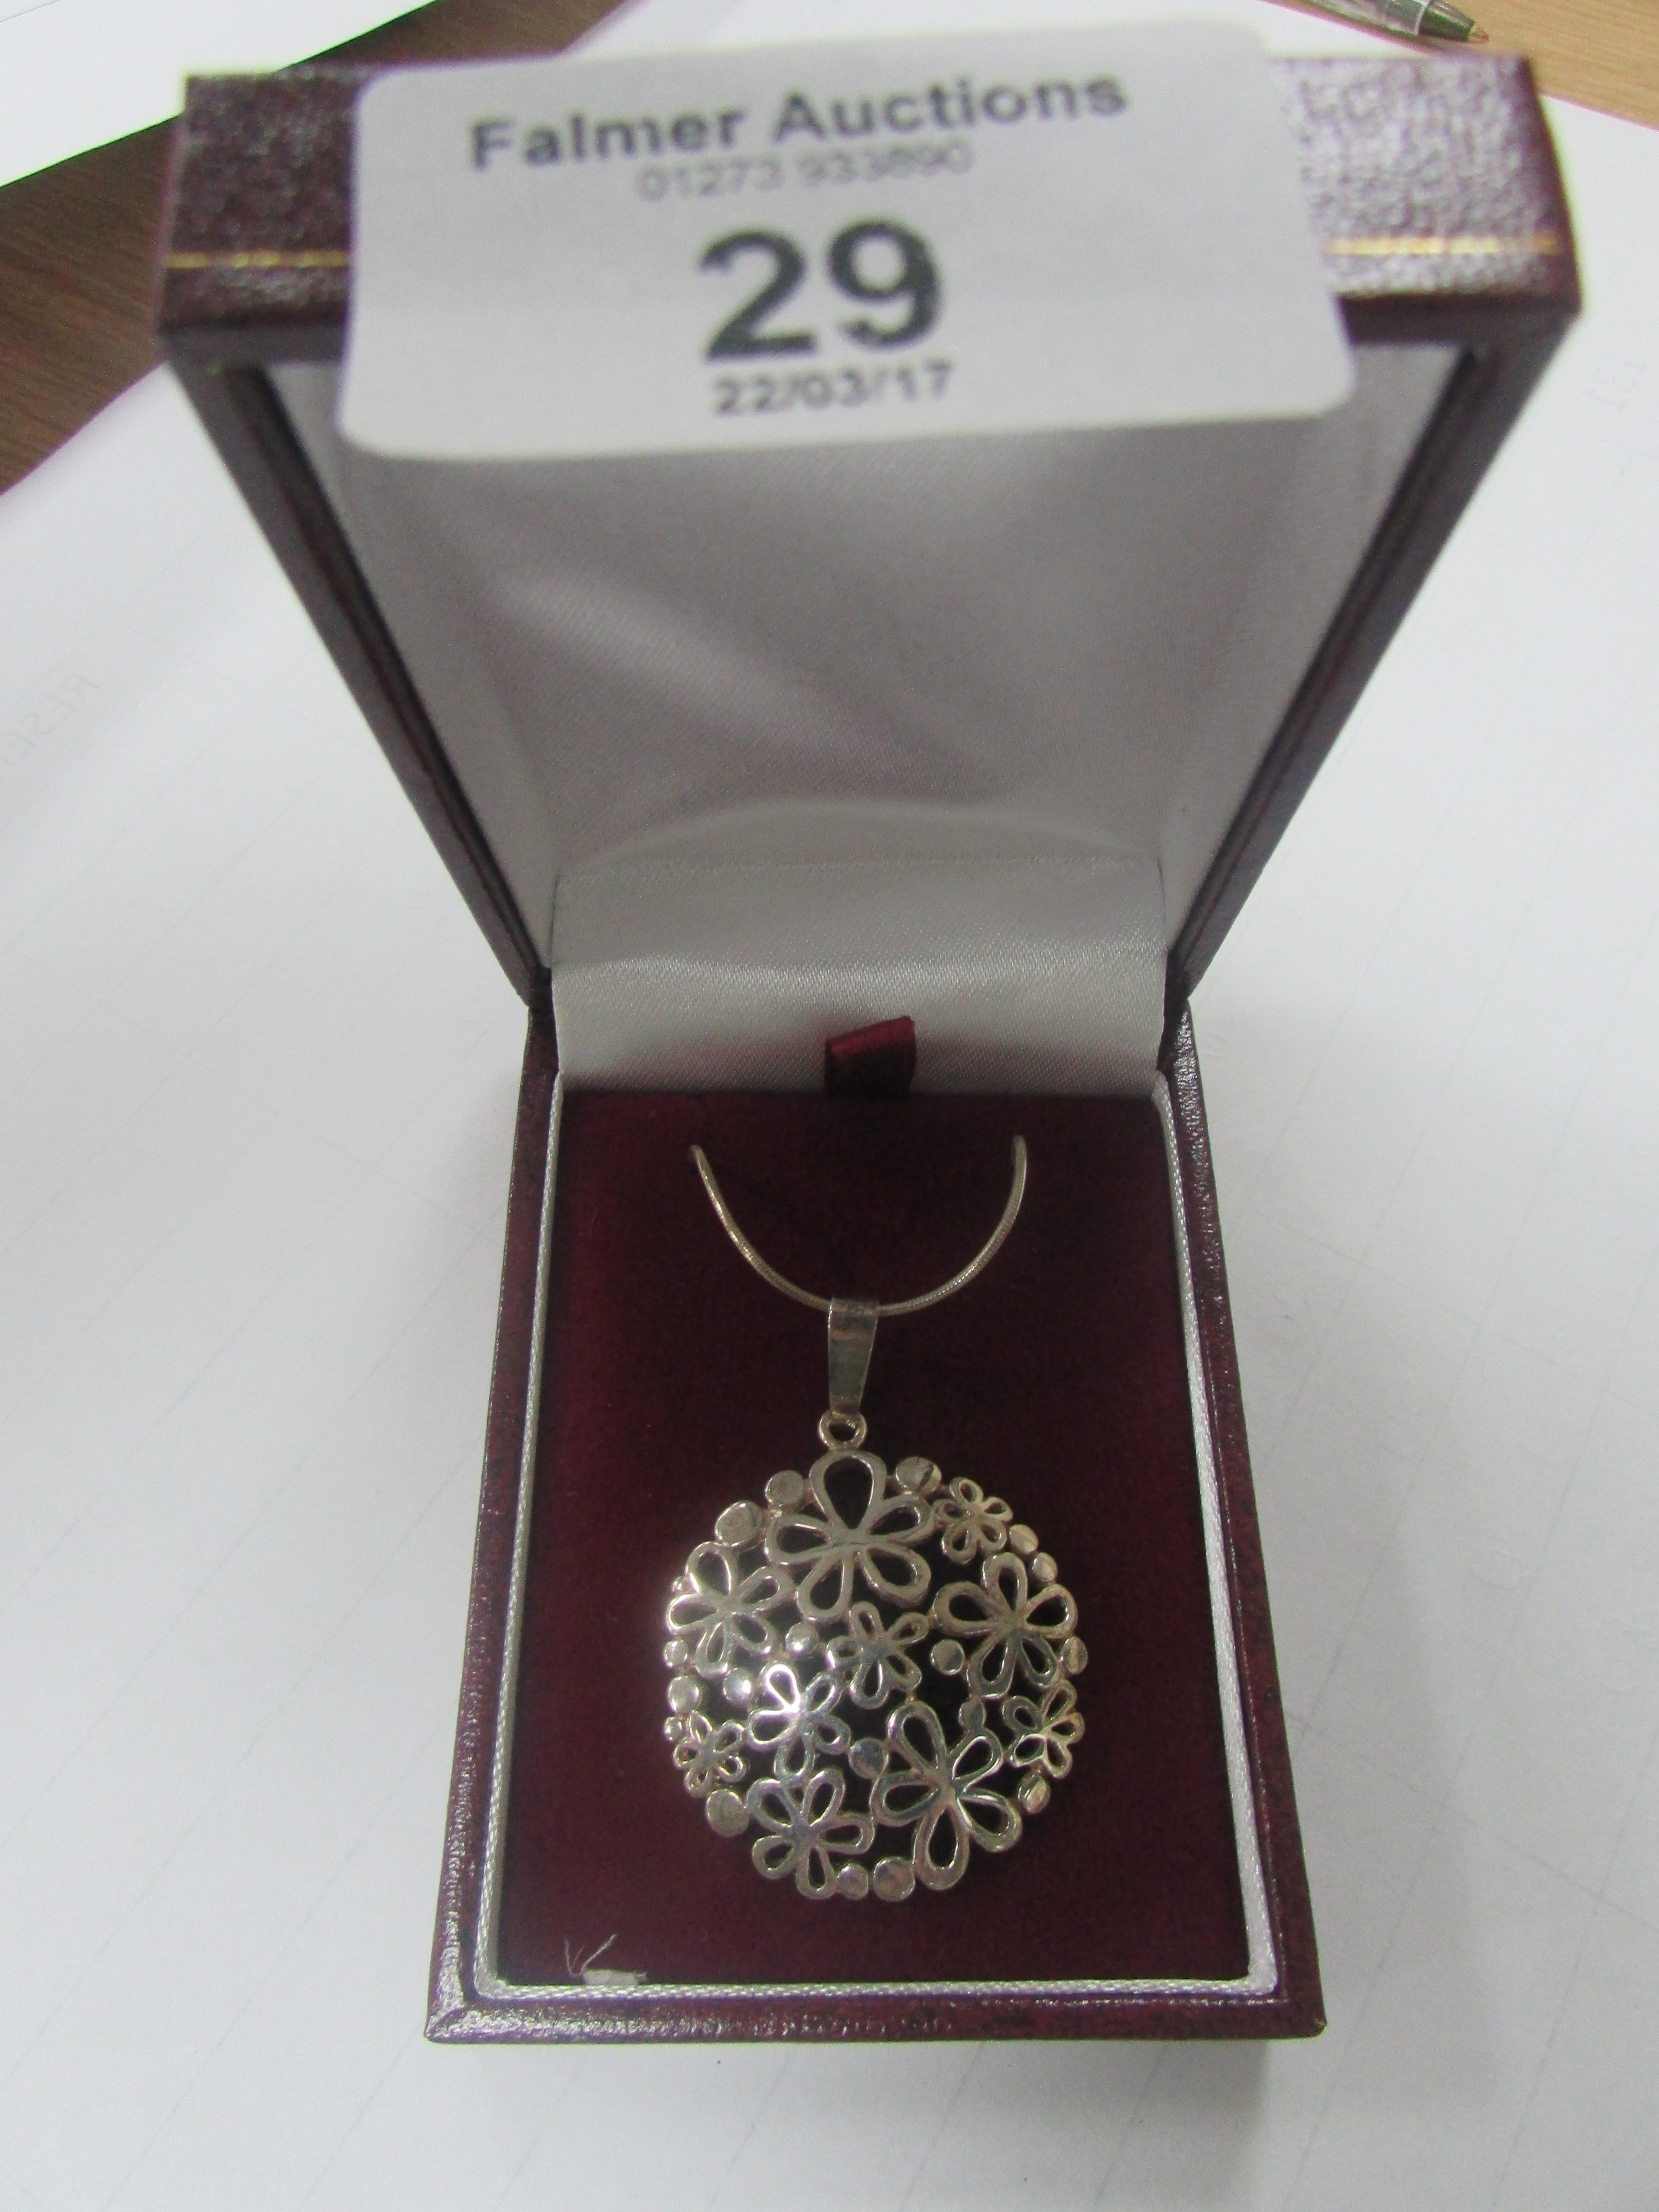 Lot 29 - 925 silver pendant and chain